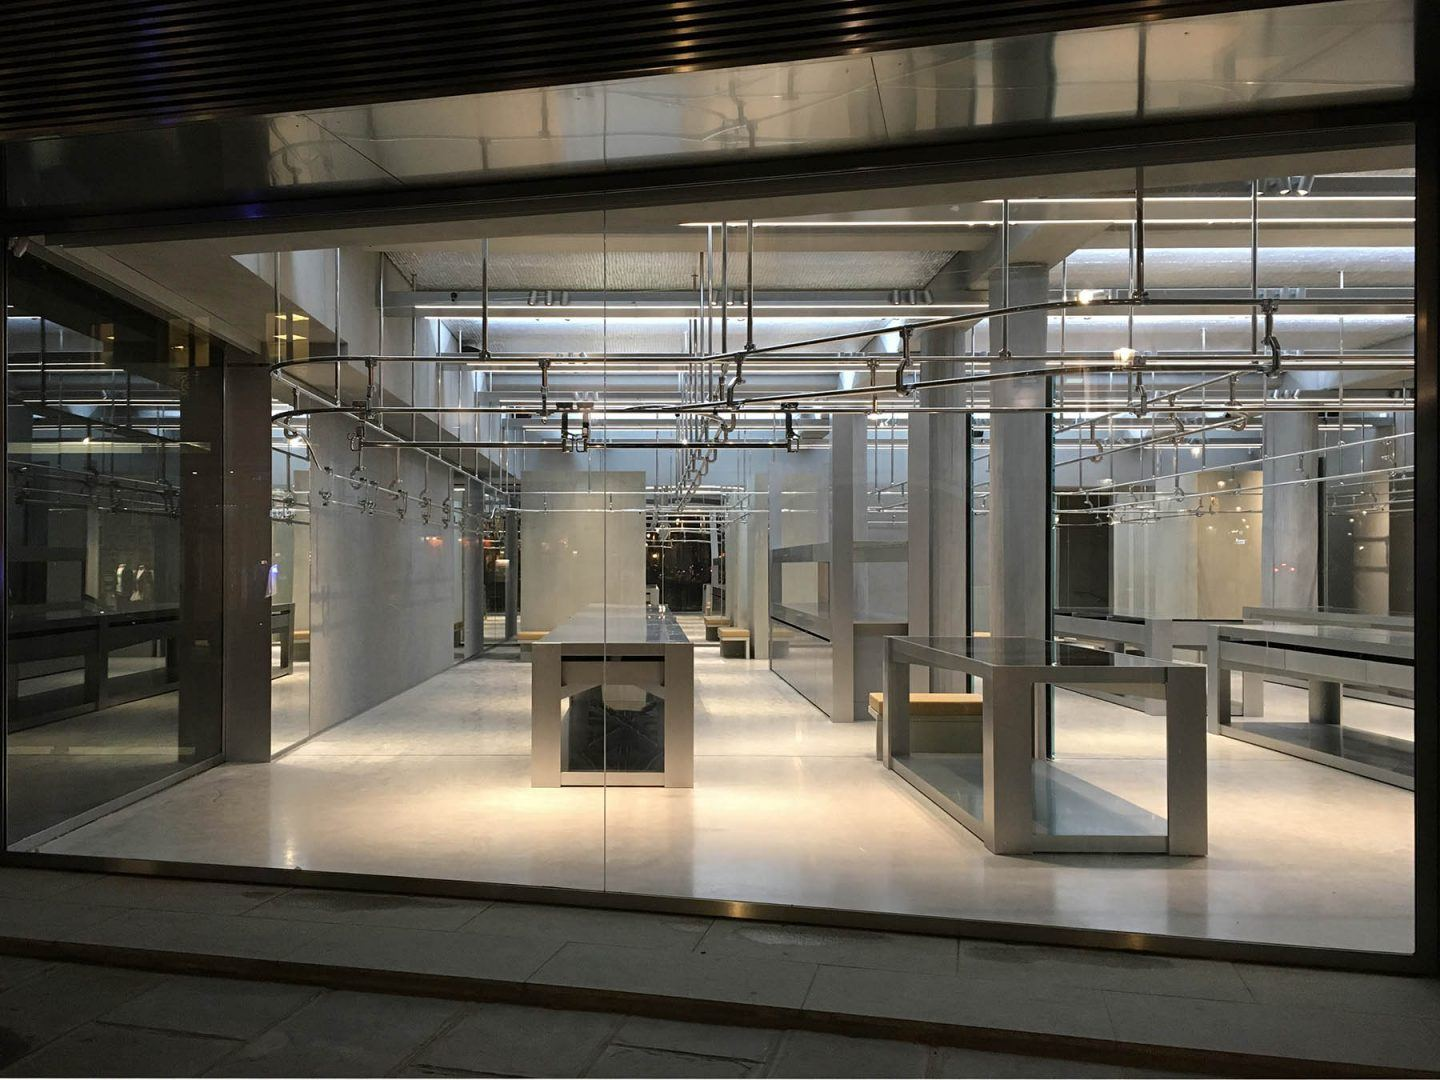 Balenciaga Flagship Store By Gonzalez Haase AAS IGNANT